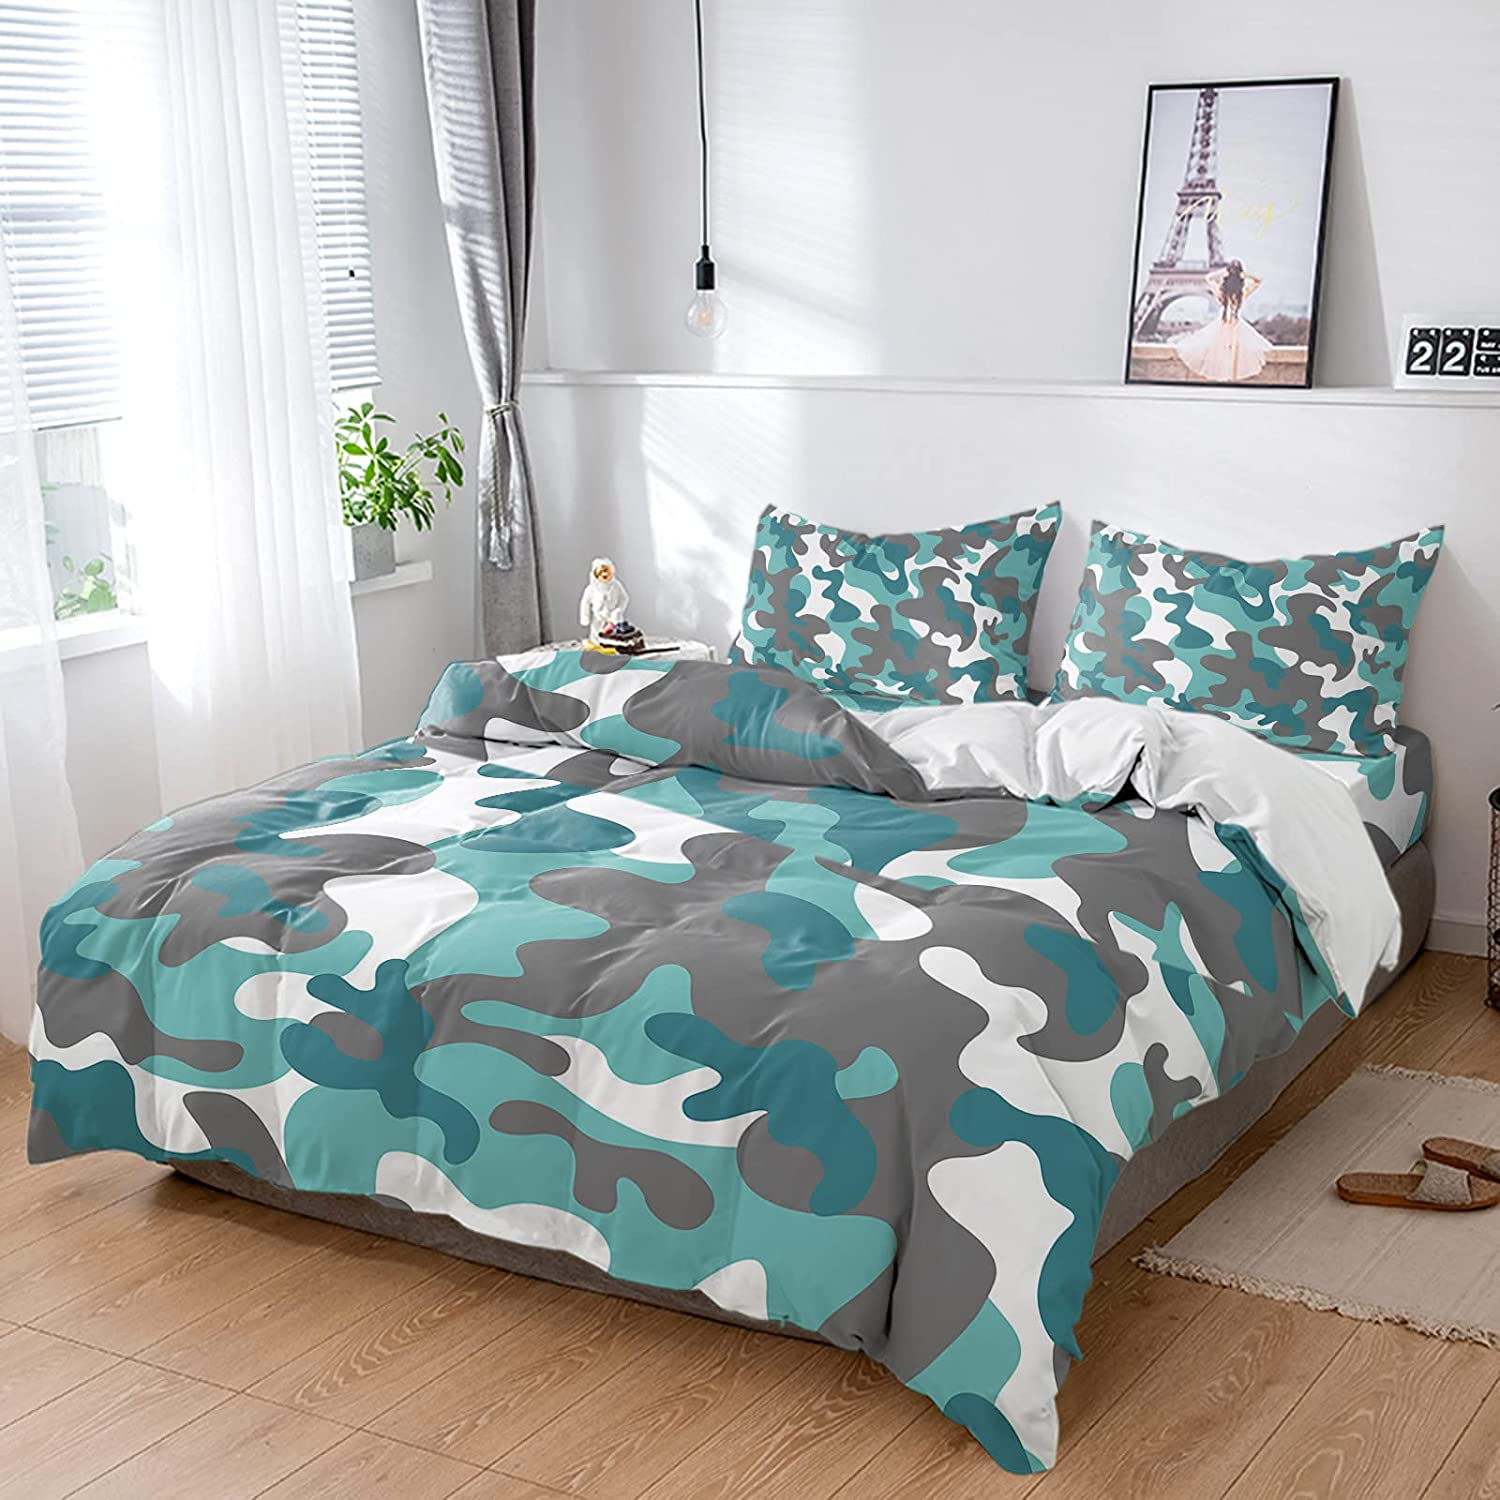 Military Camouflage Ranking TOP3 Duvet Cover Sets 4 Full Ultra Max 49% OFF Piece Soft Bed